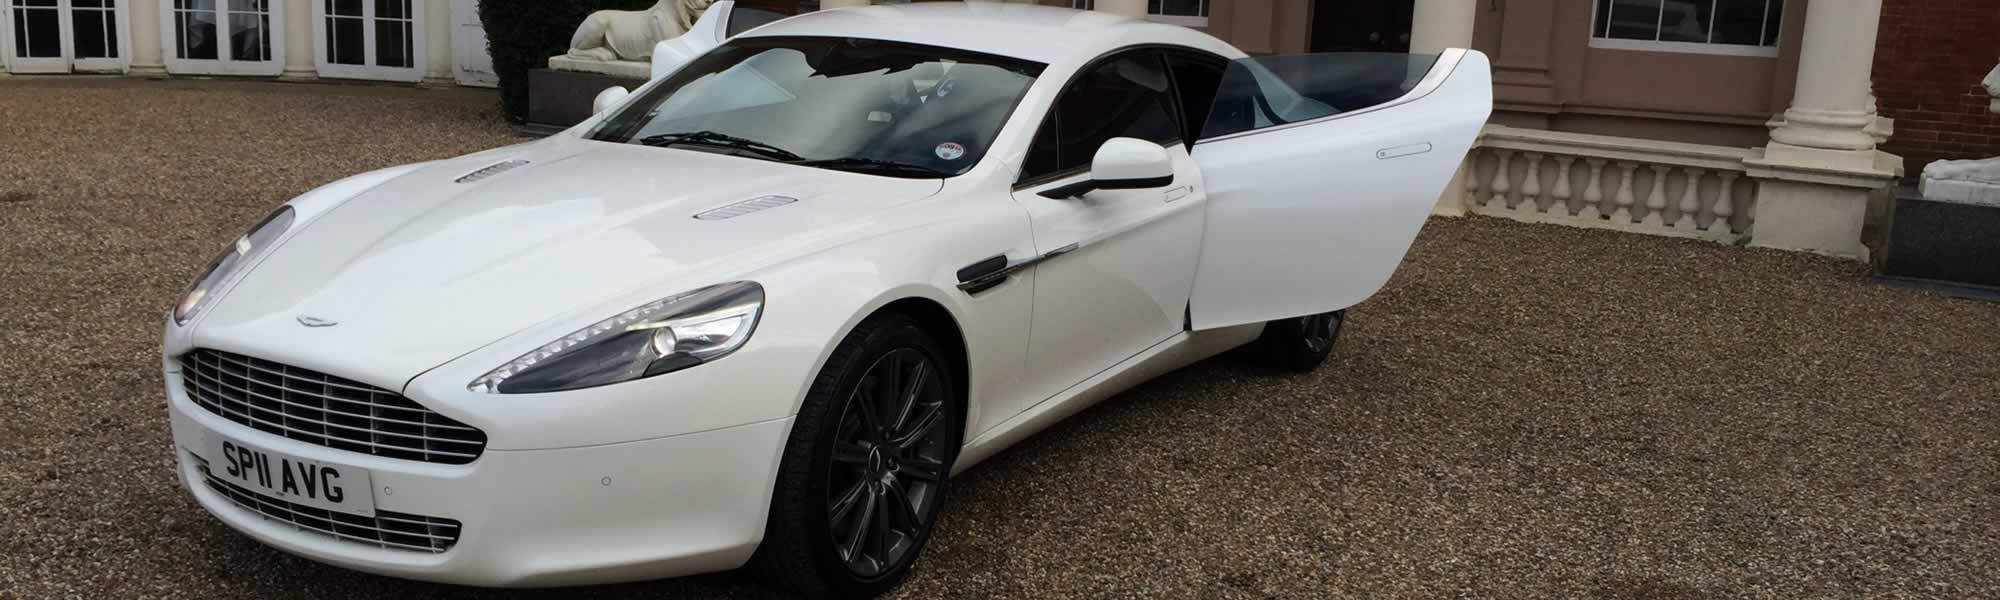 Aston Martin hire London